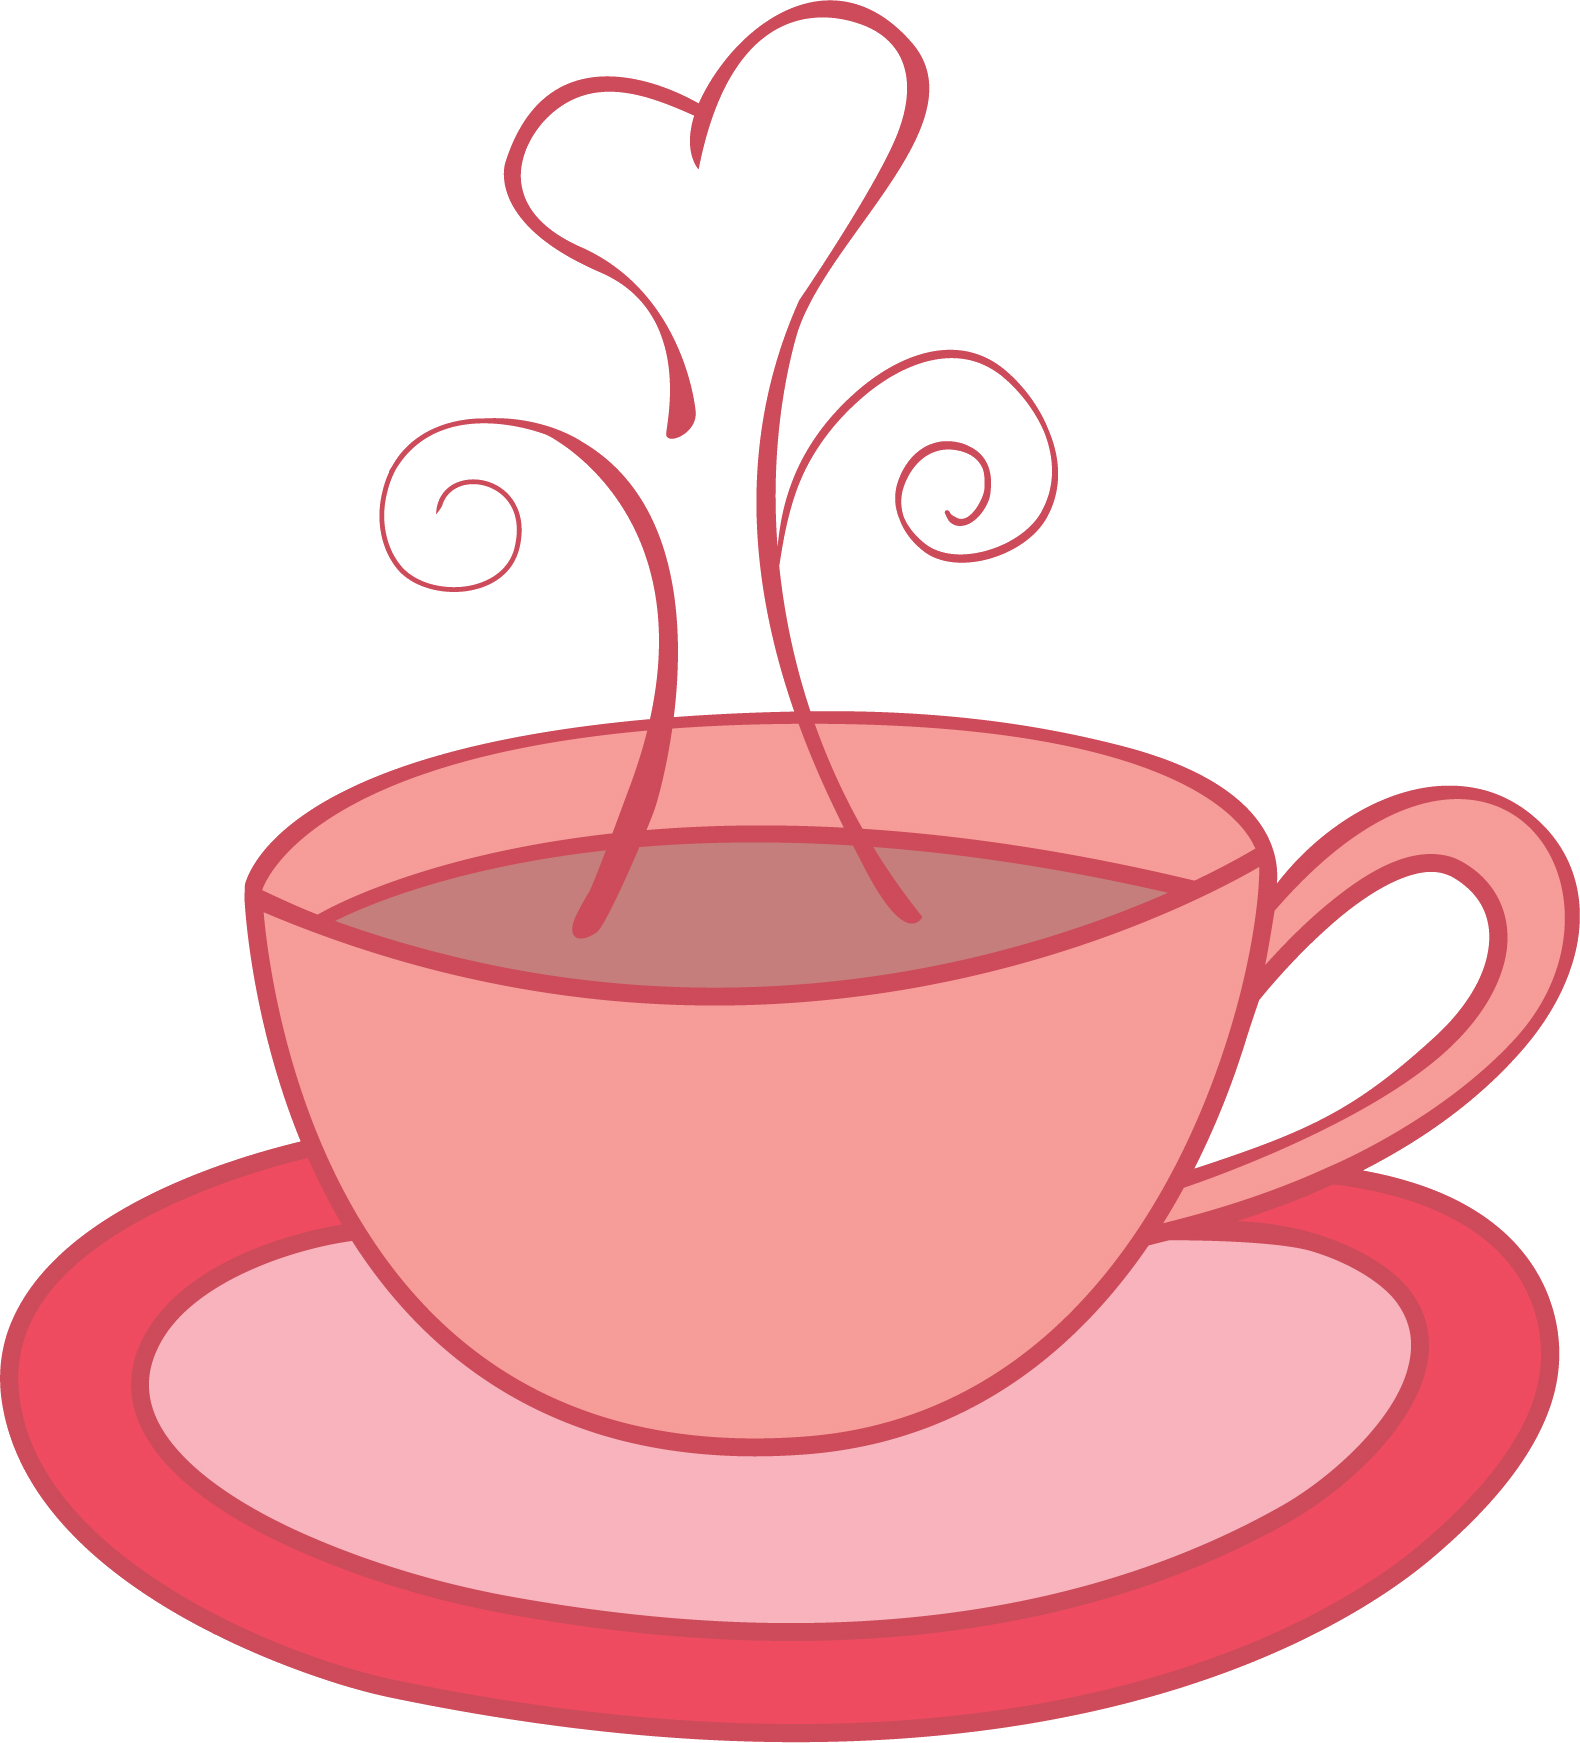 Tea cup teacup clipart free download clip art on